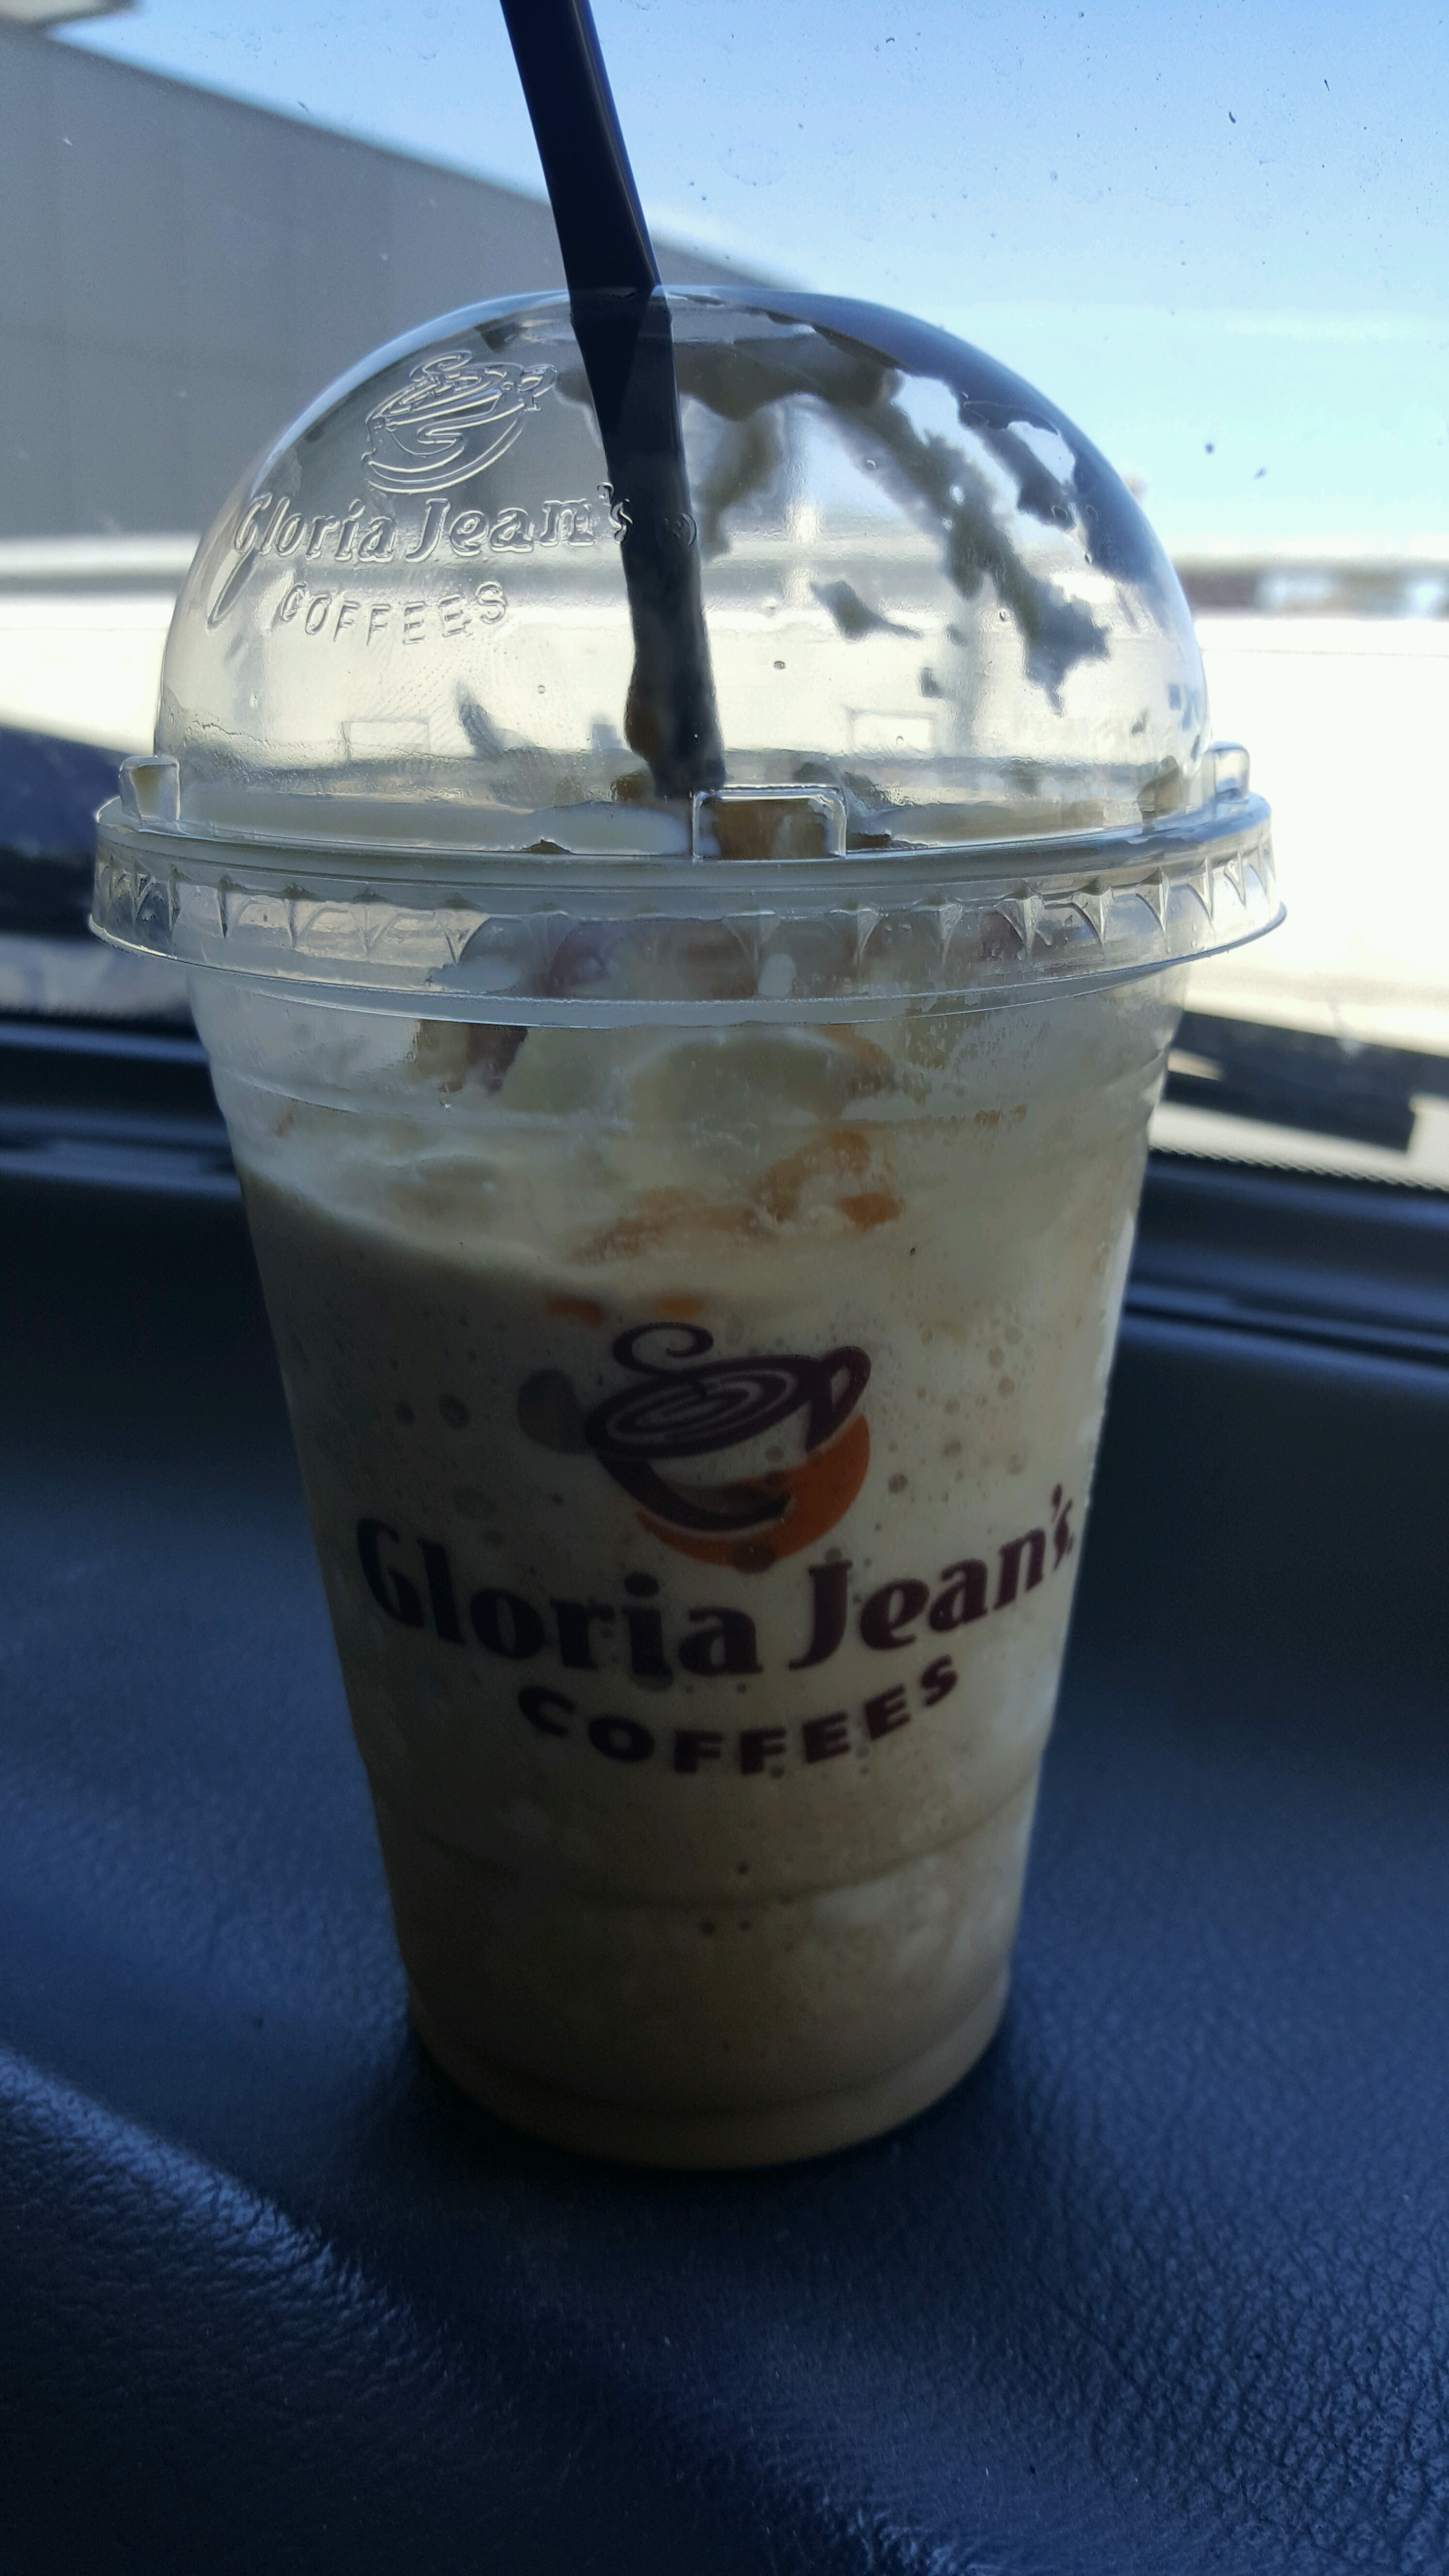 Gloria Jeans Coffees Charlestown | 30 Pearson Street, Charlestown, New South Wales 2290 | +61 2 4942 5362